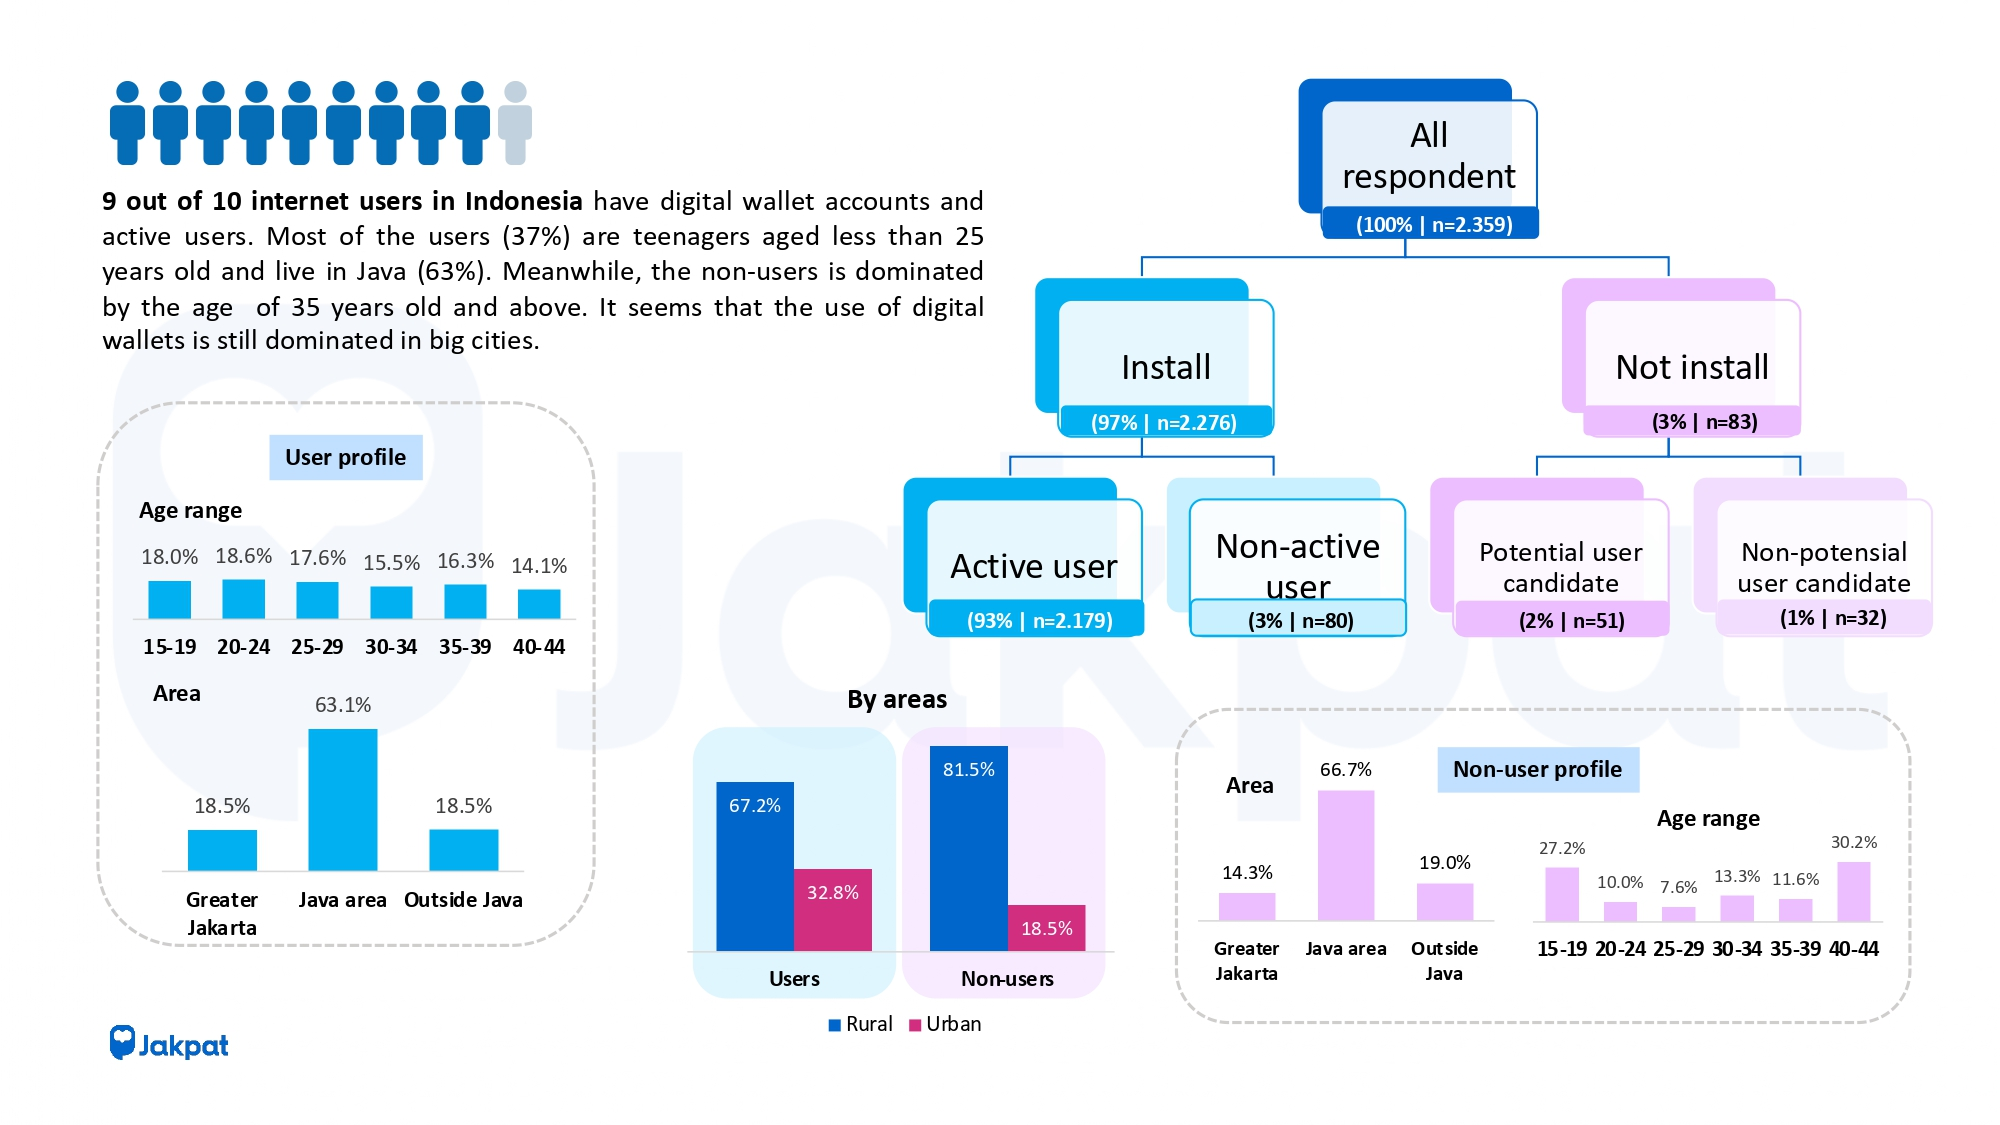 Digital Wallet Semester 2 2020 - JAKPAT SURVEY REPORT free version_pages-to-jpg-0004